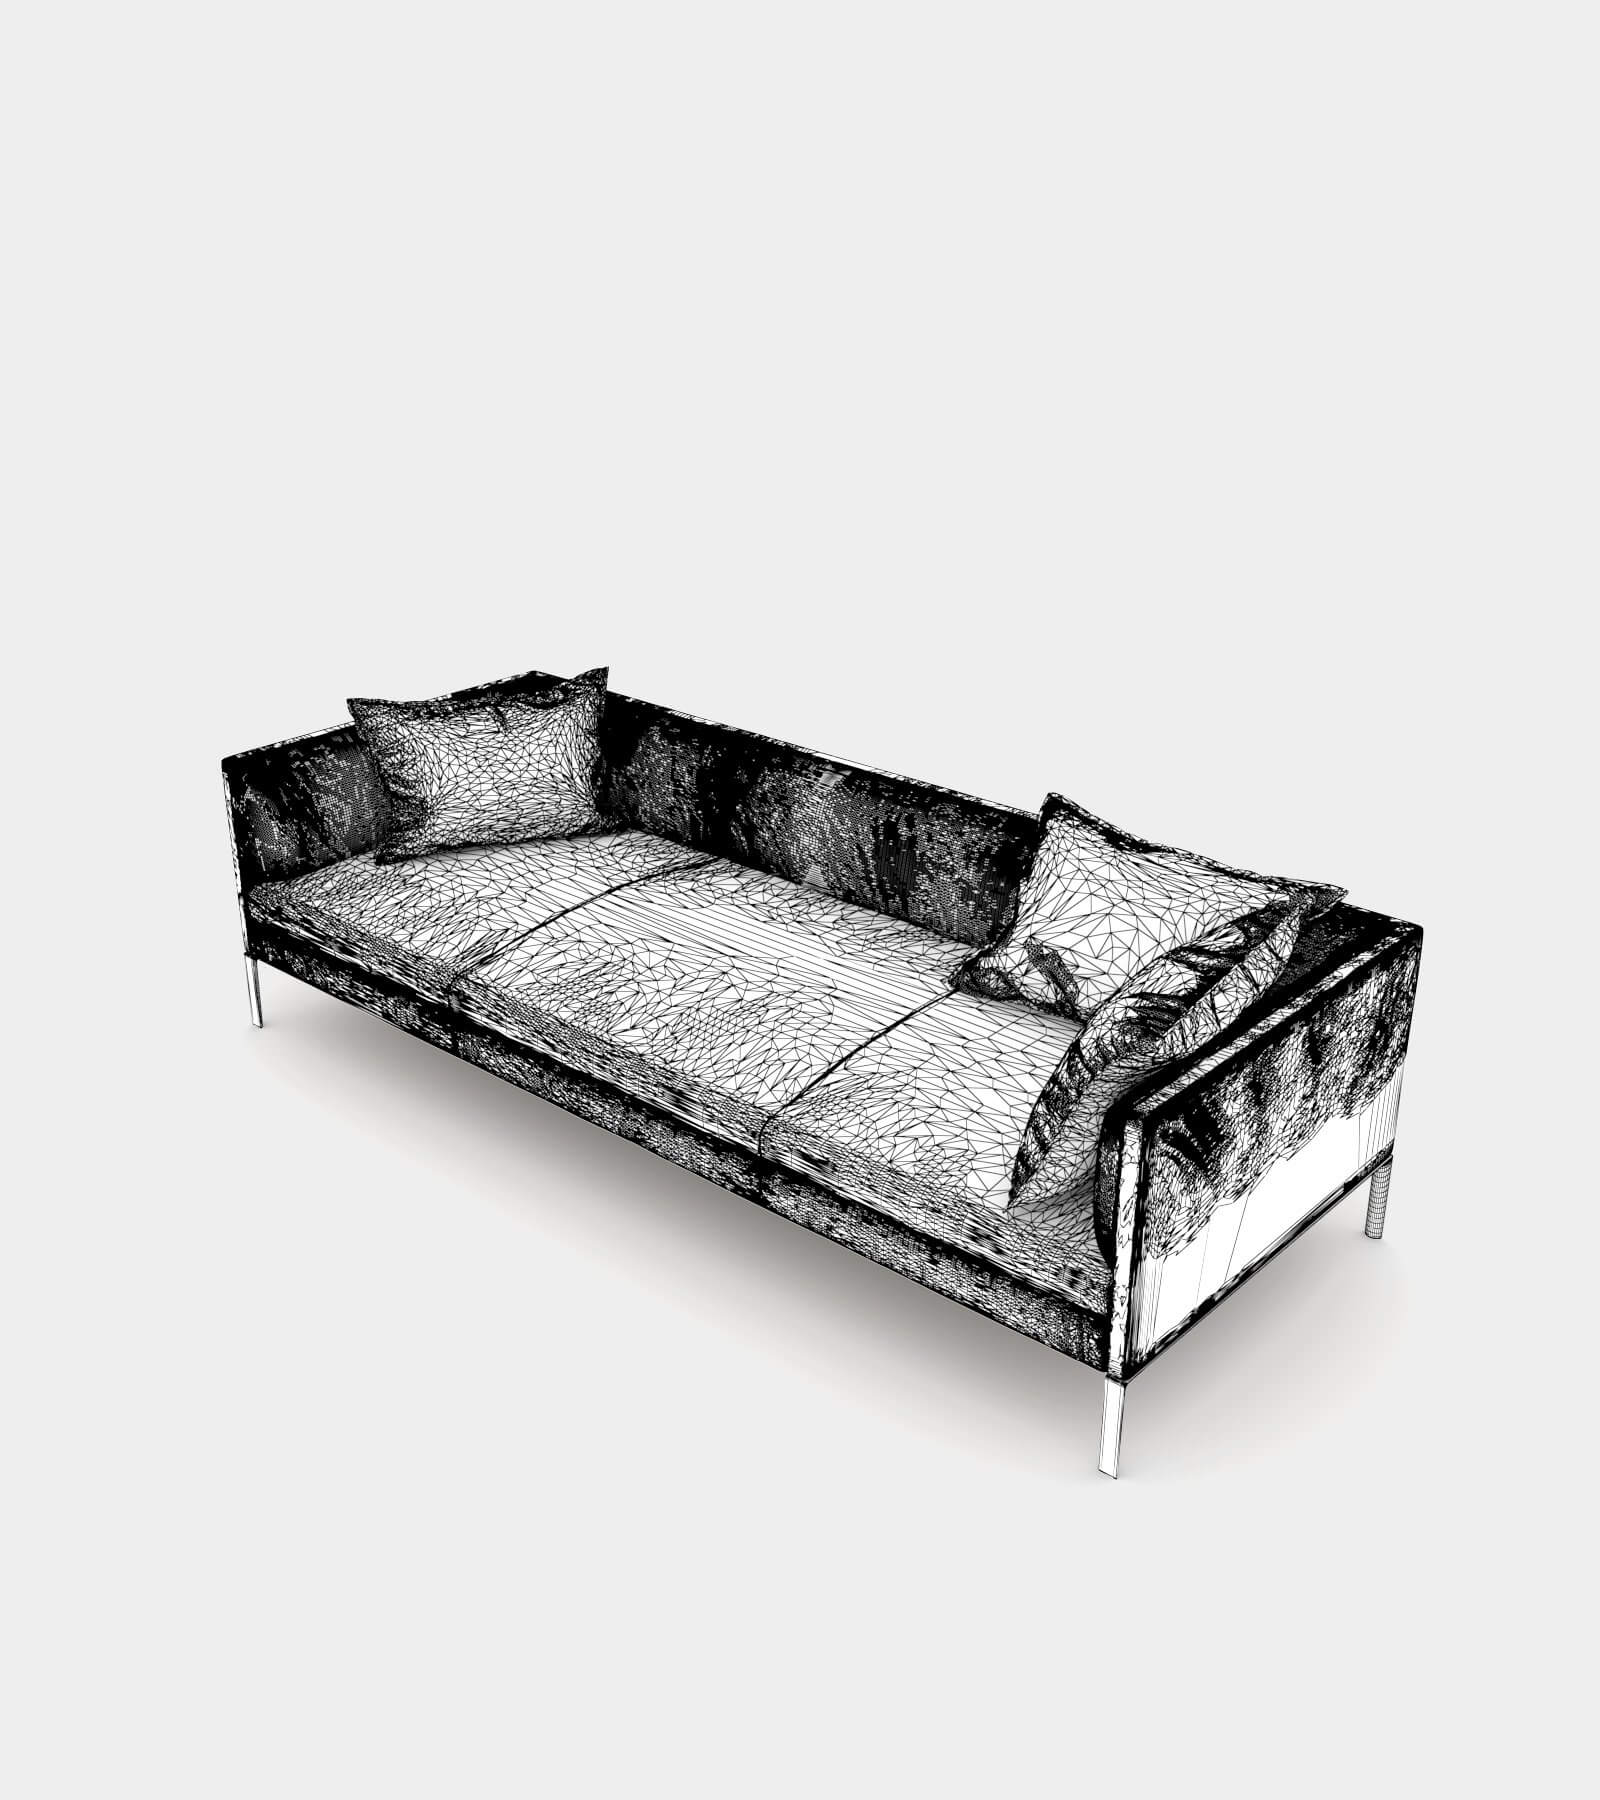 Leather couch with cushions-wire-1 3D Model